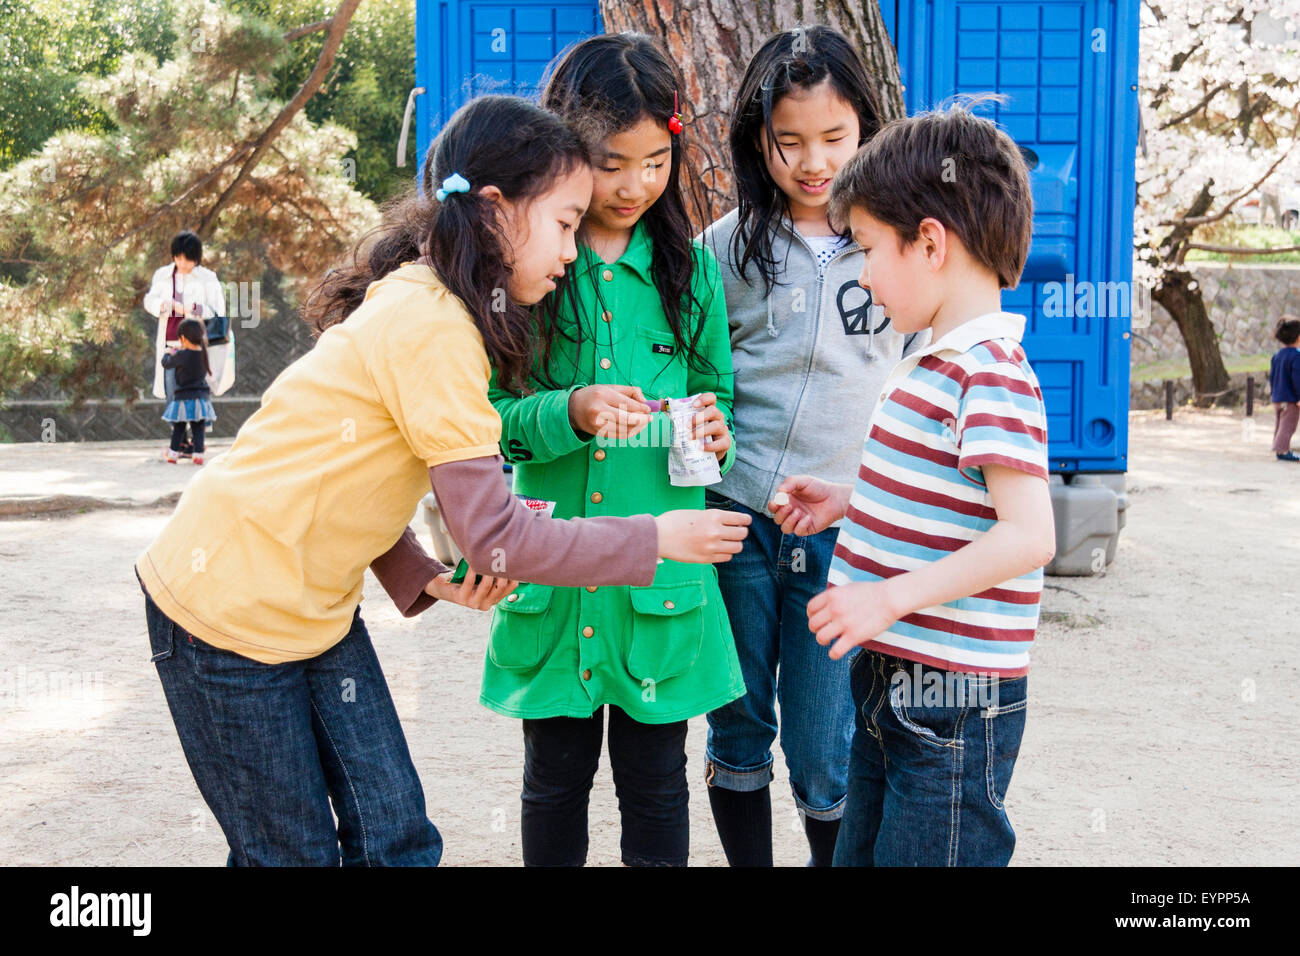 7 Year Old Asian Immagini   7 Year Old Asian Fotos Stock - Alamy 2684dc80c209